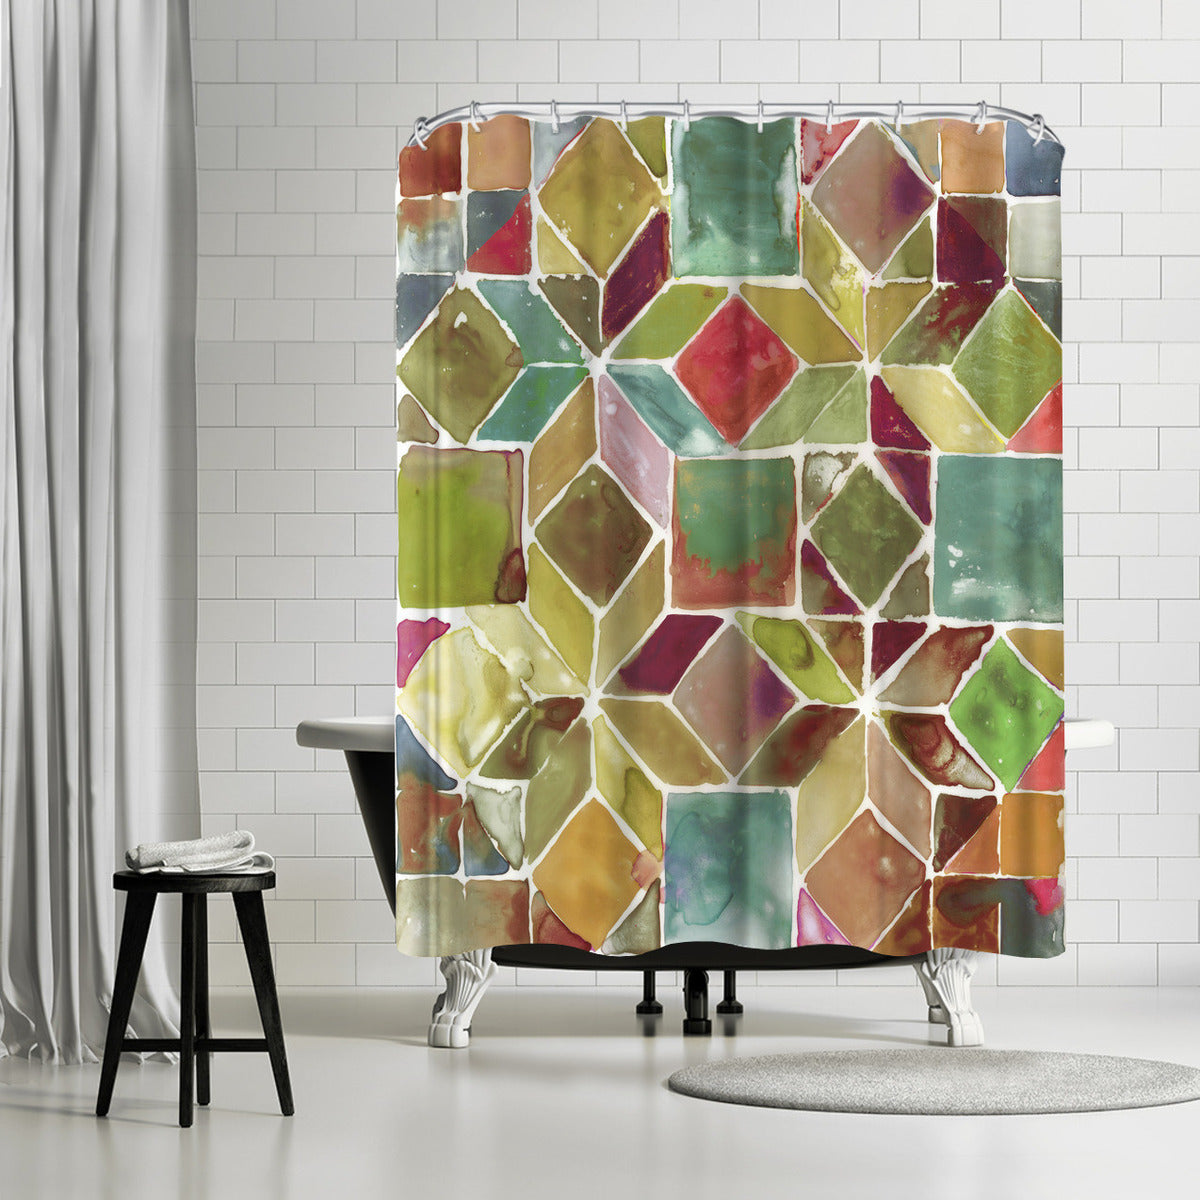 Tessellation Ii by PI Creative Art Shower Curtain -  - Americanflat